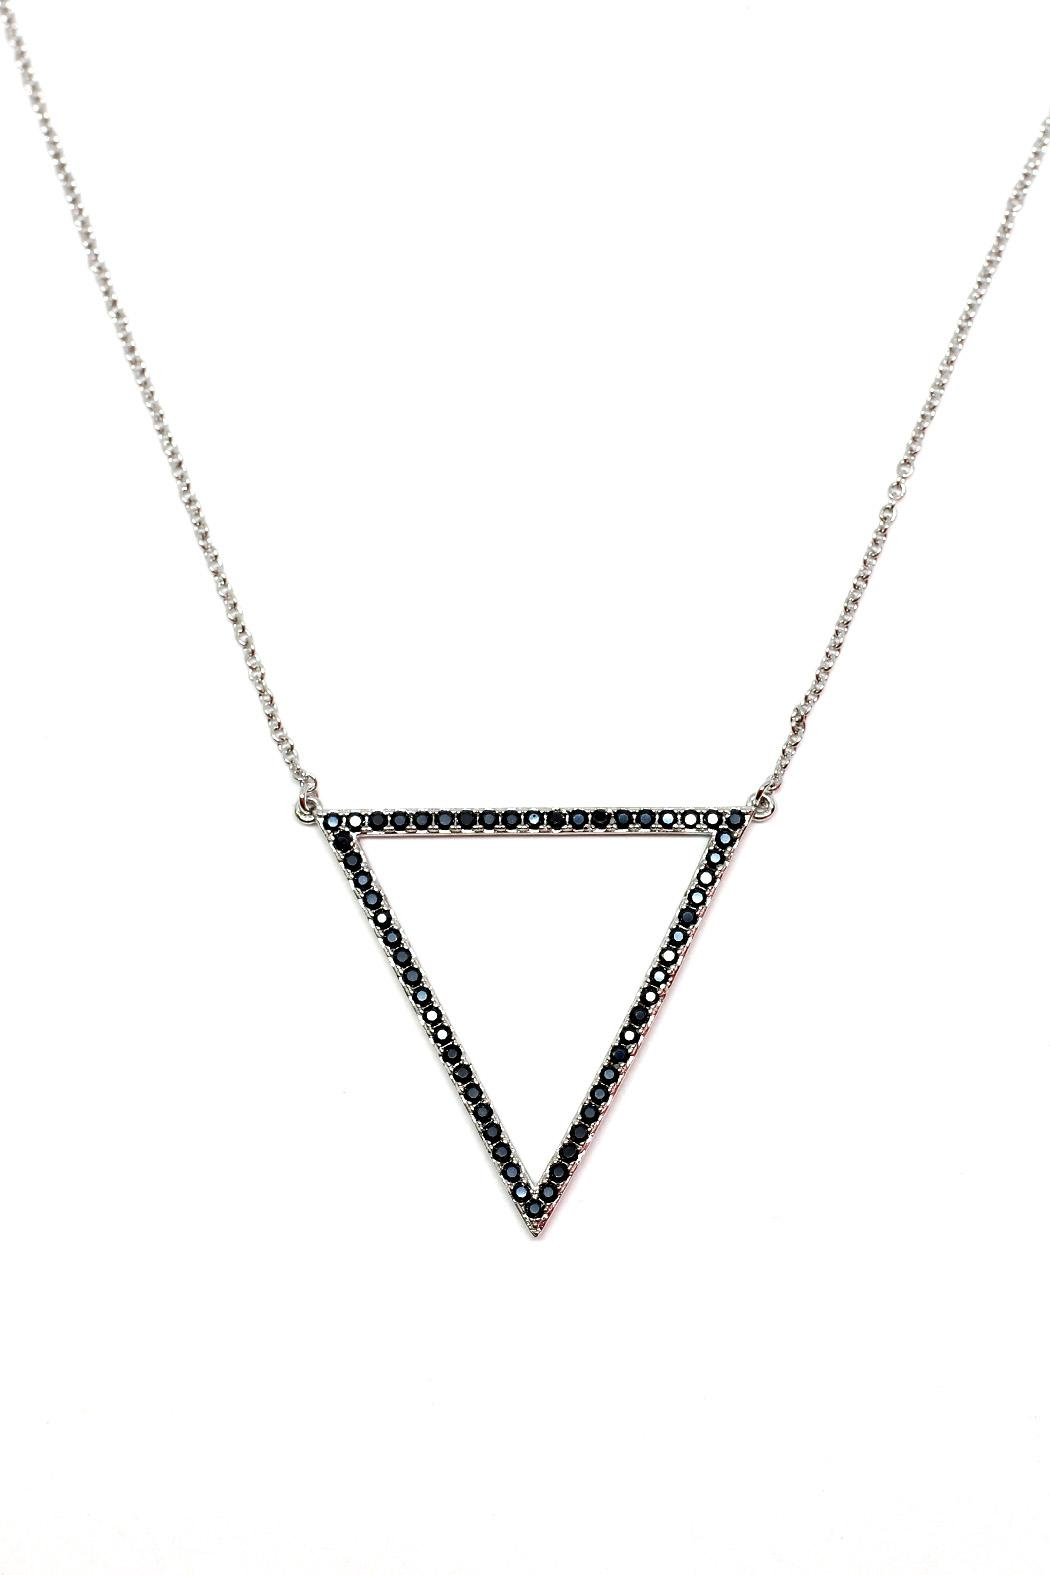 TINK TINK Triangular Rhodium Necklace - Main Image